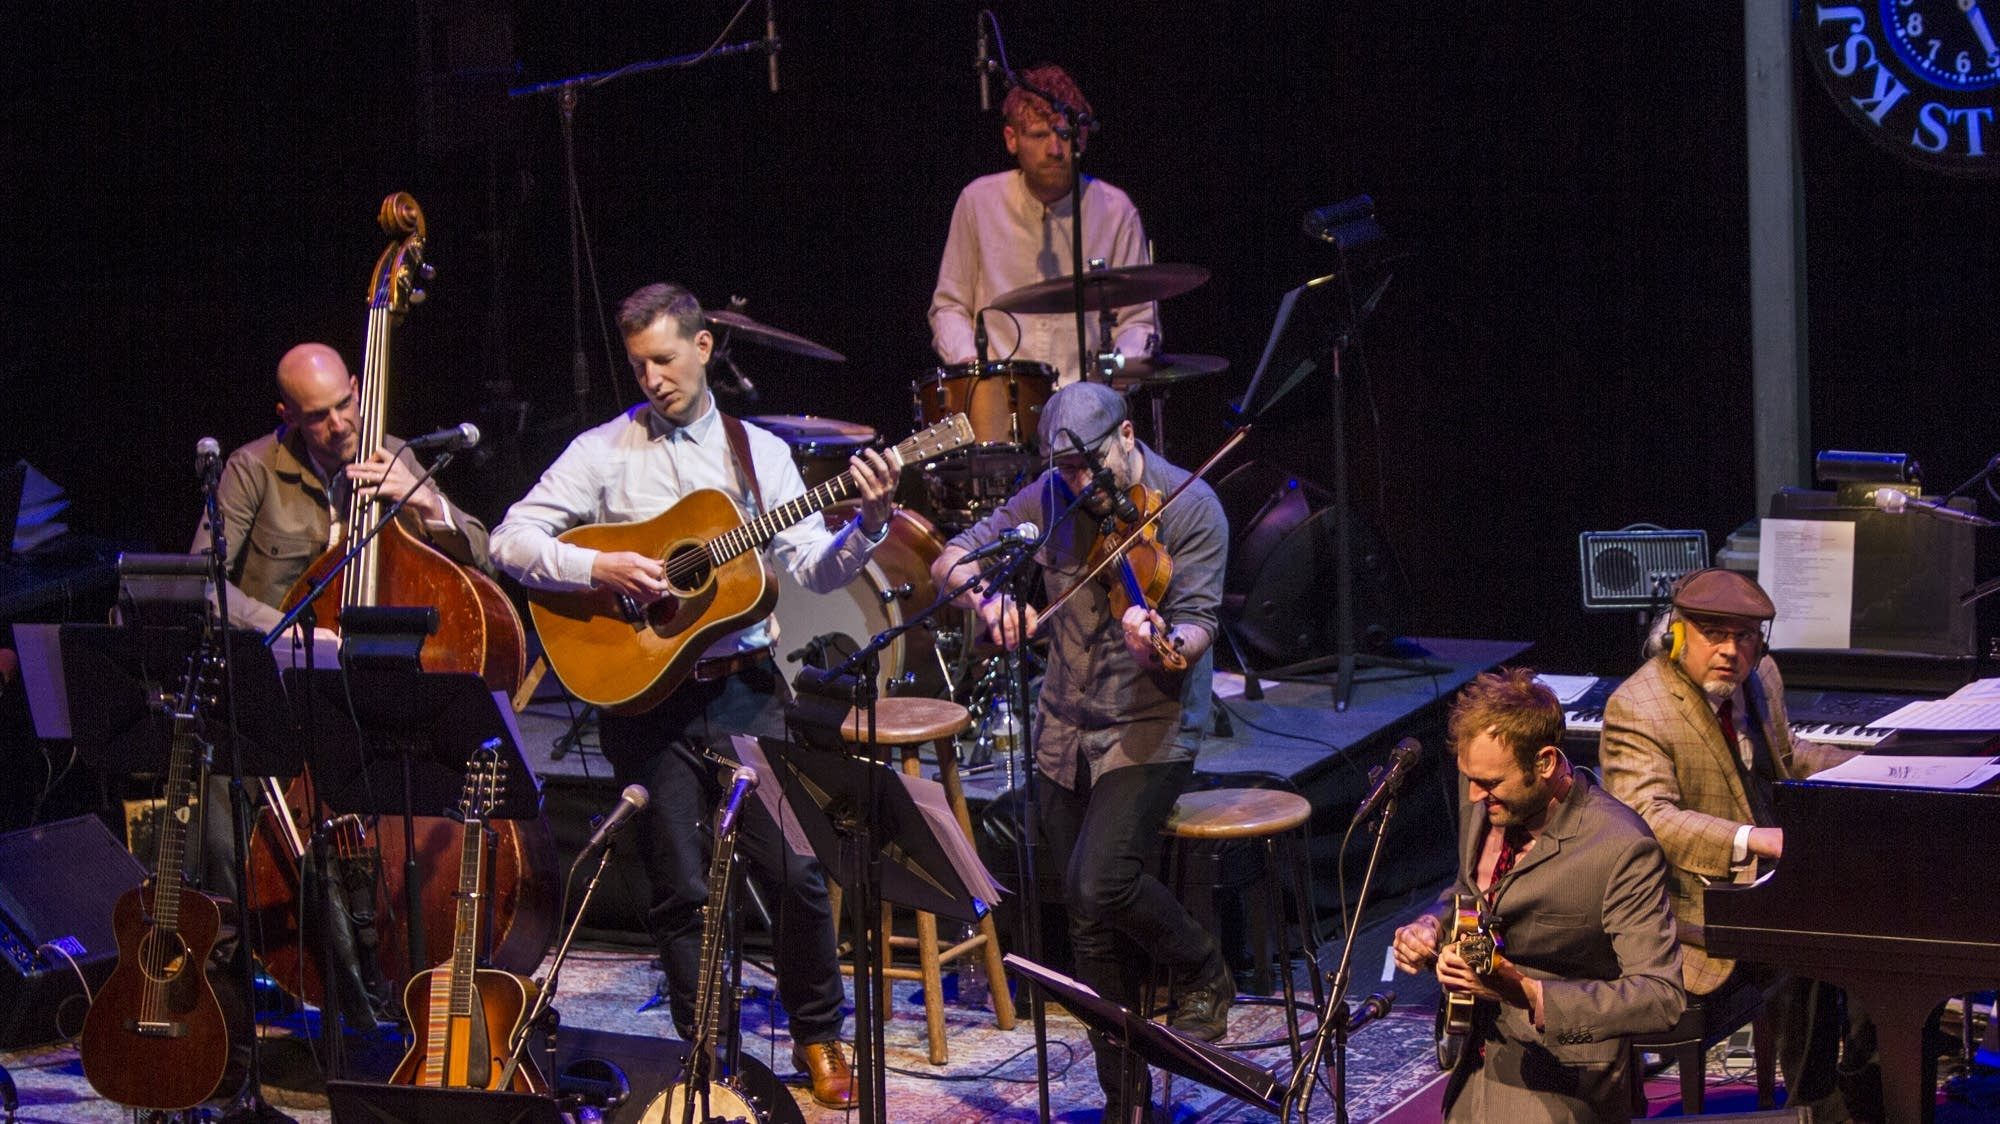 Chris Thile and the band welcome the audience.